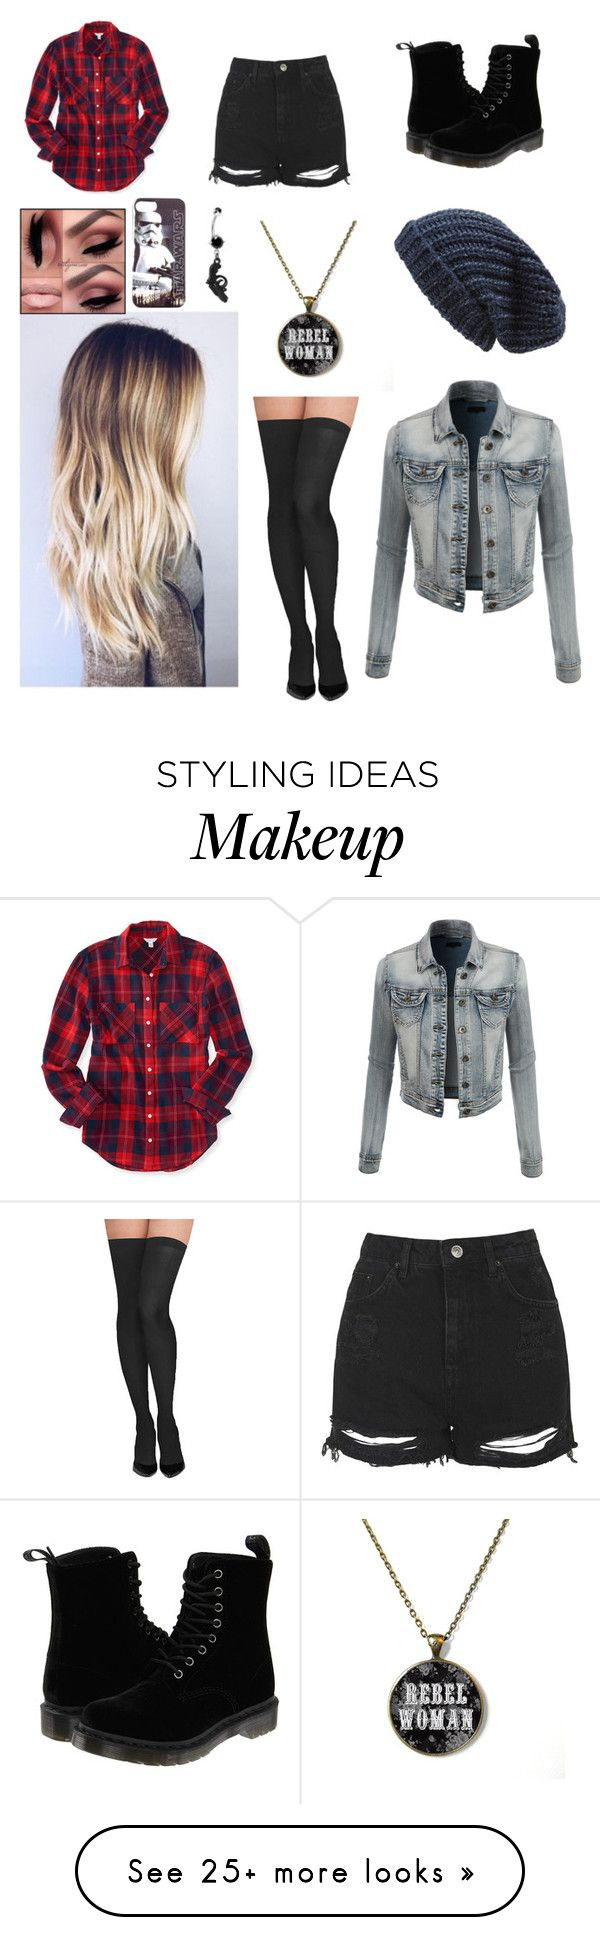 """""""Untitled #2631"""" by sammibeawsome on Polyvore featuring Aéropostale, Topshop, Dr. Martens, Revolver, Commando, LE3NO and Phase 3"""